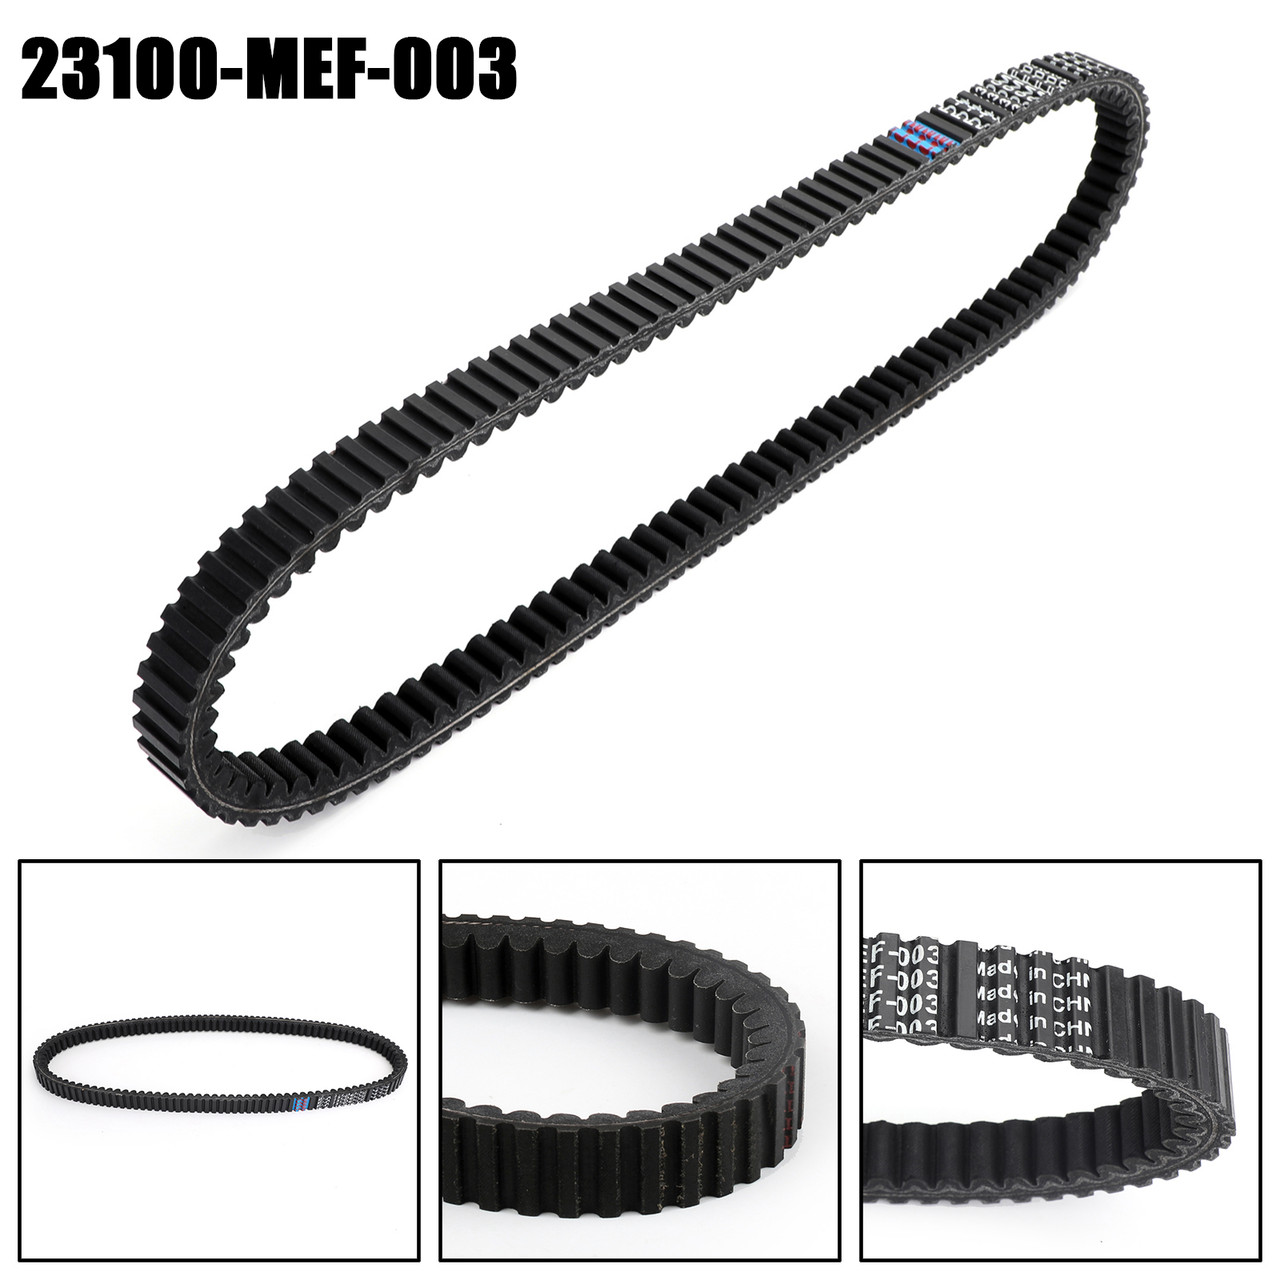 Scooter Drive Belt For Honda FJS400 Silver Wing 2006-2009 23100-MEF-003